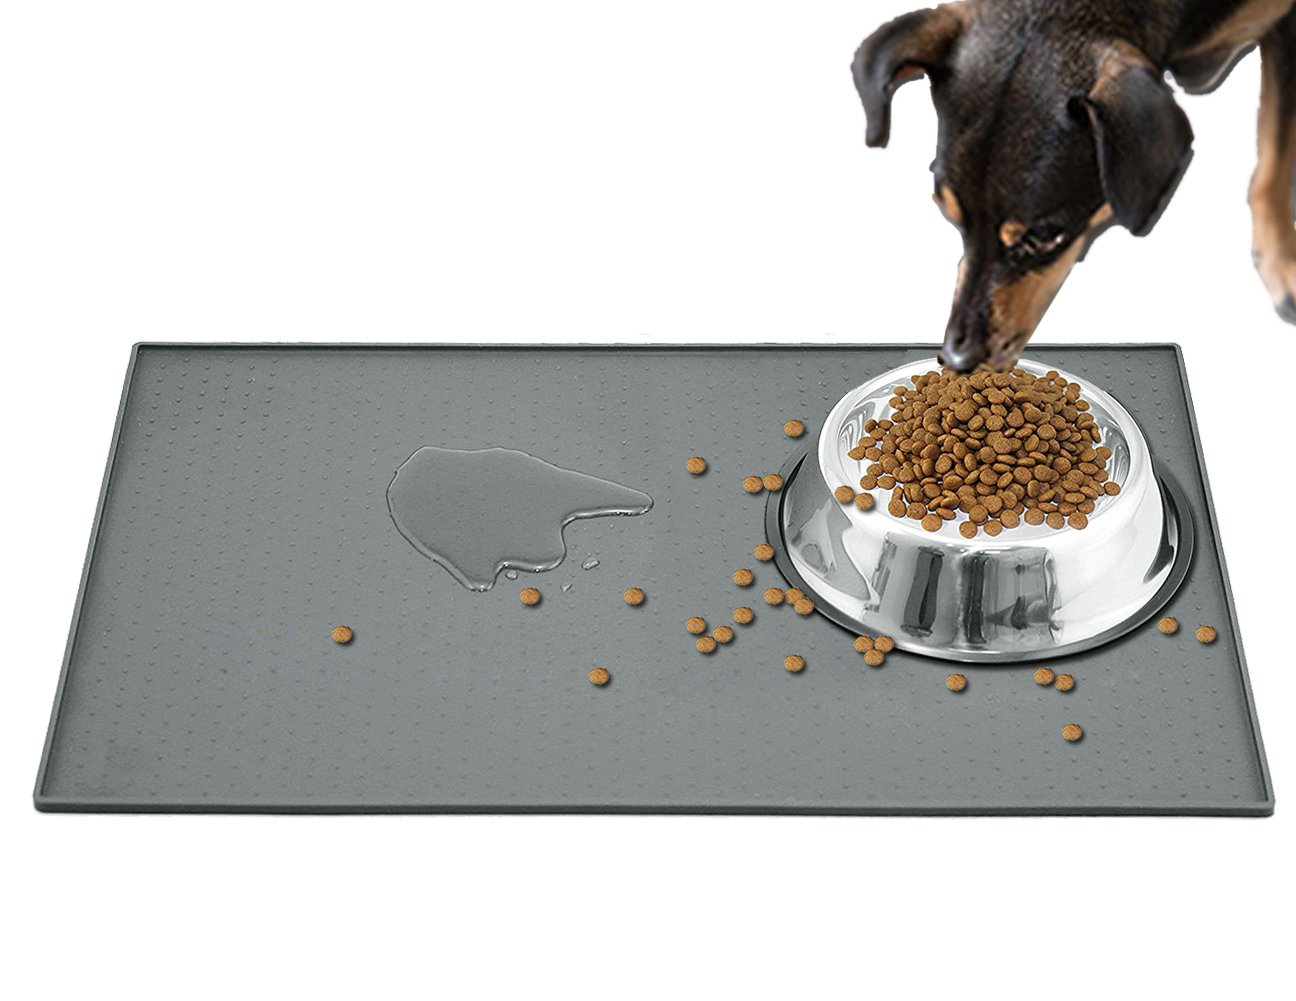 Extra Large Dog Food Mat (24''x16''), FDA Grade Silicone Pet Feeding Mat for Cat Dog Bowls, Waterproof, Anti-Slip, Anti-Spill, Grey Pet Placemats for Floors VOAO